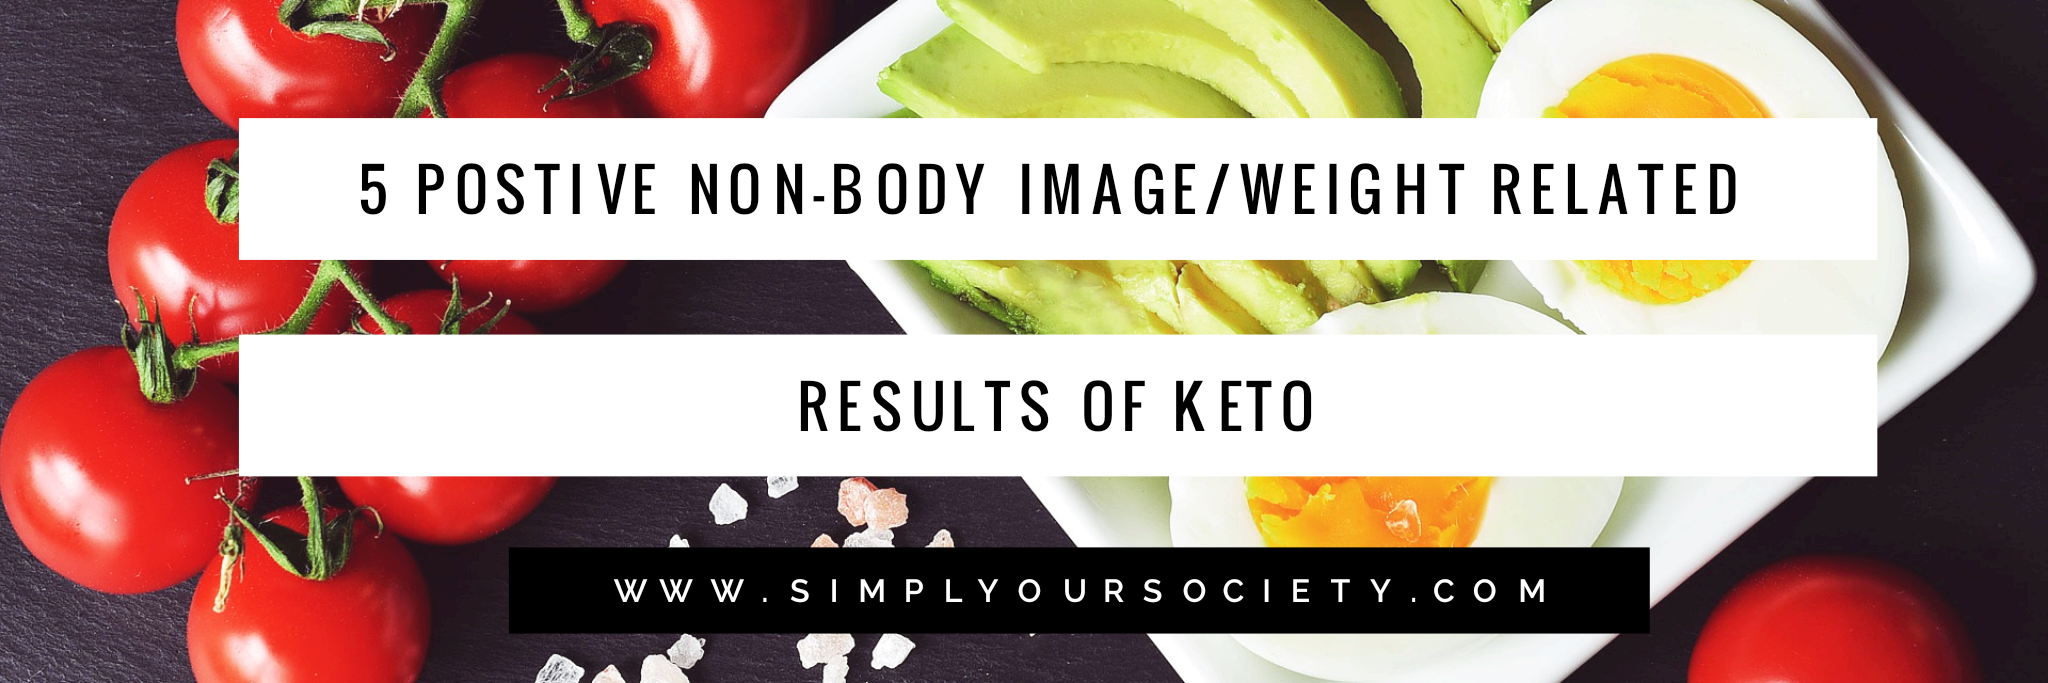 keto diet review, keto diet, low carbohydrate diet, ketosis, surprising benefits of keto diet, keto diet benefits and ristks